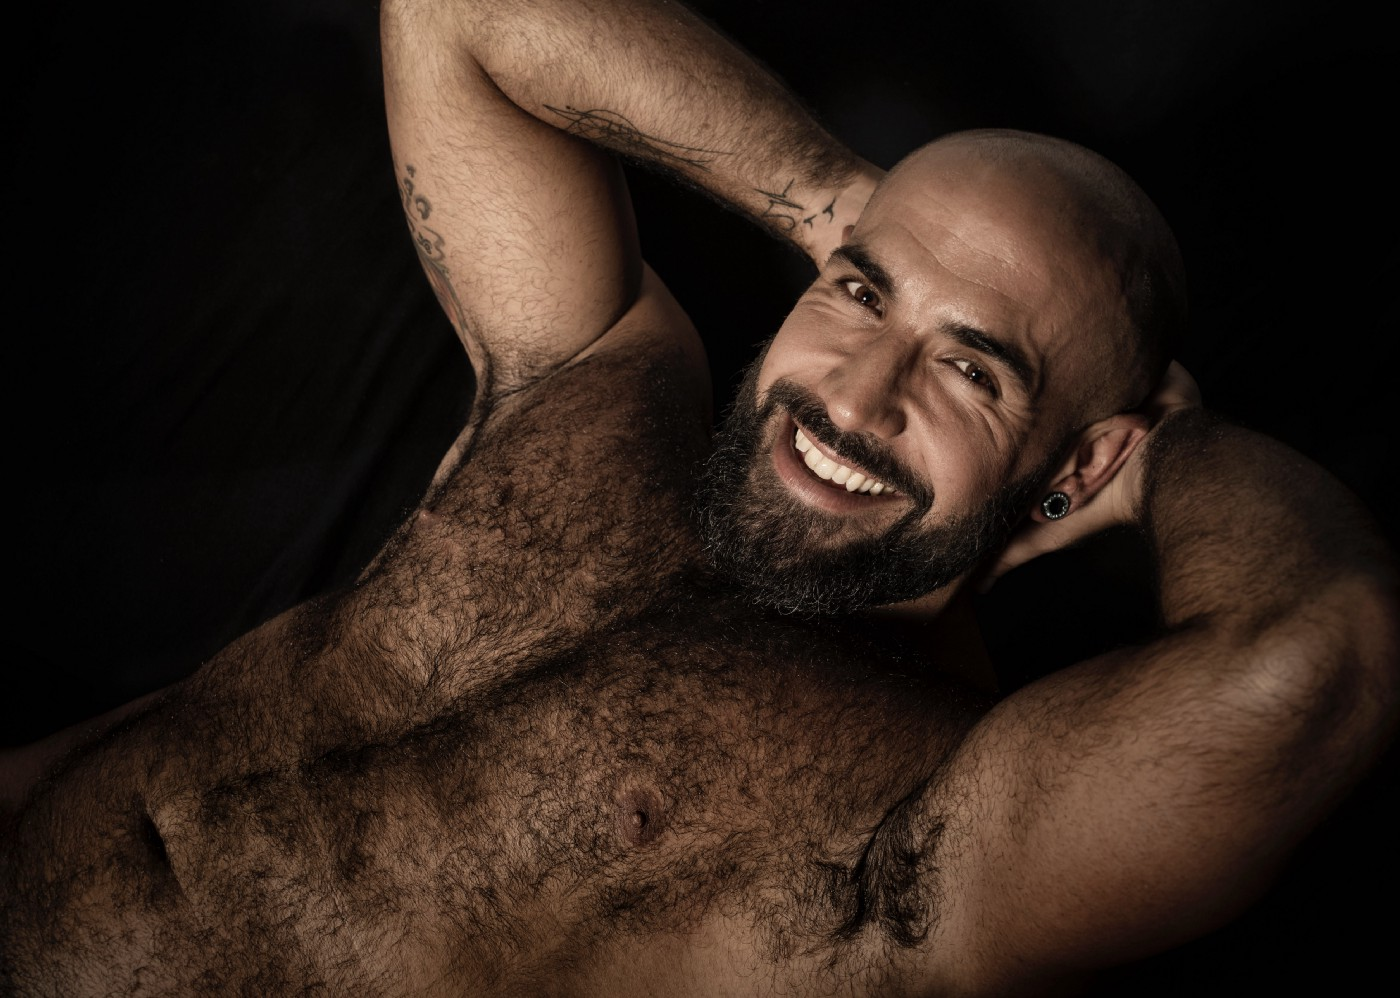 Handsome middle aged man with arms behind his head and no shirt on, smiling widely. Very hairy.